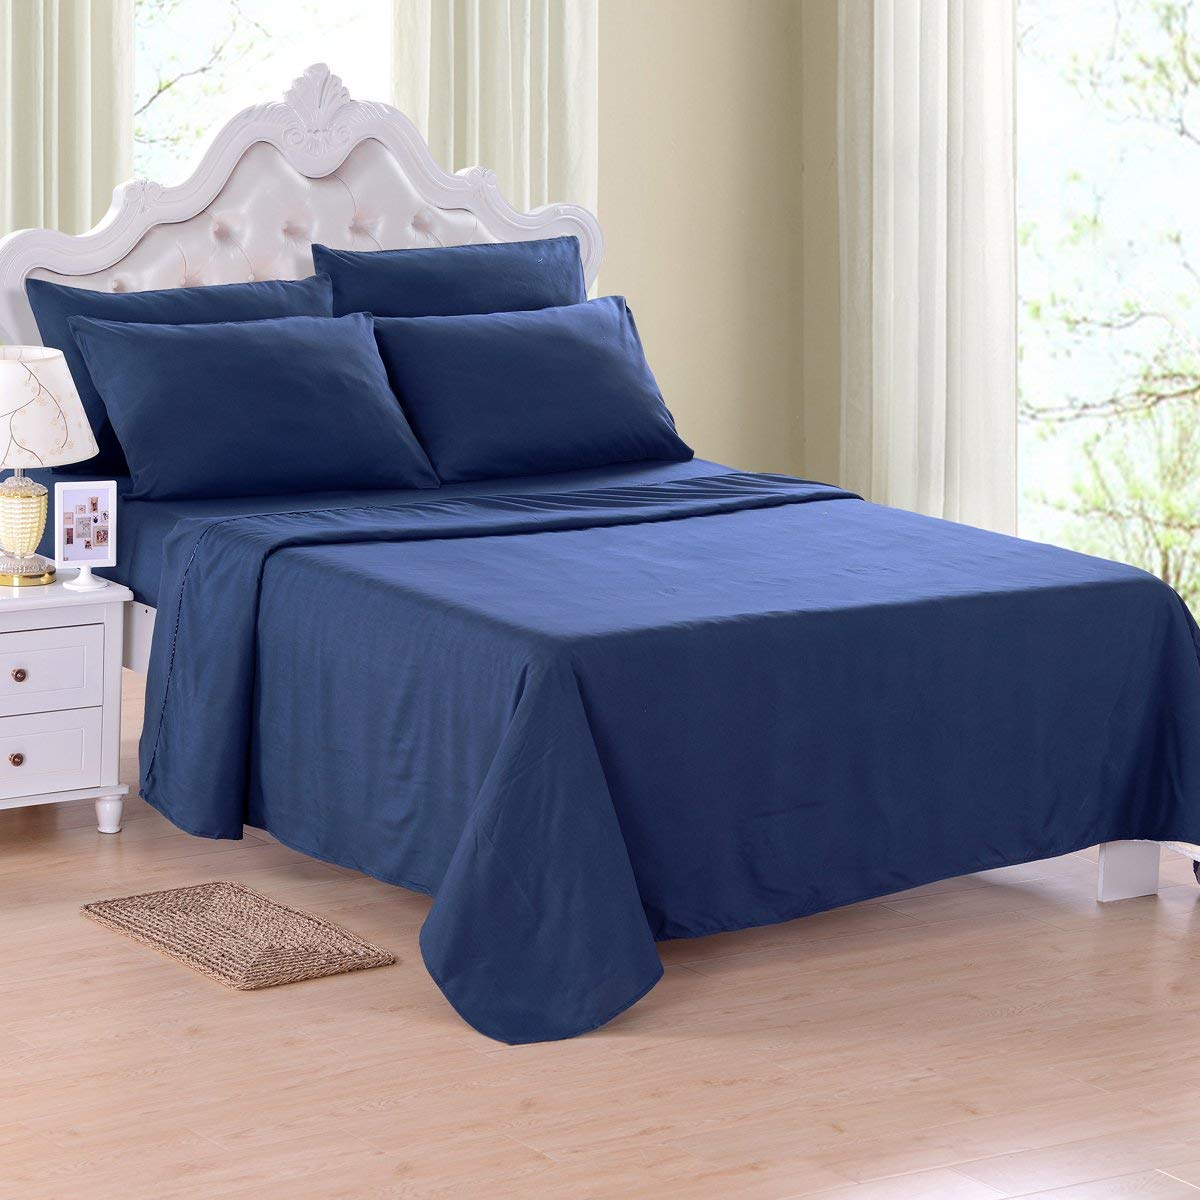 Fitted Bed Sheet Set Full Size Breathable